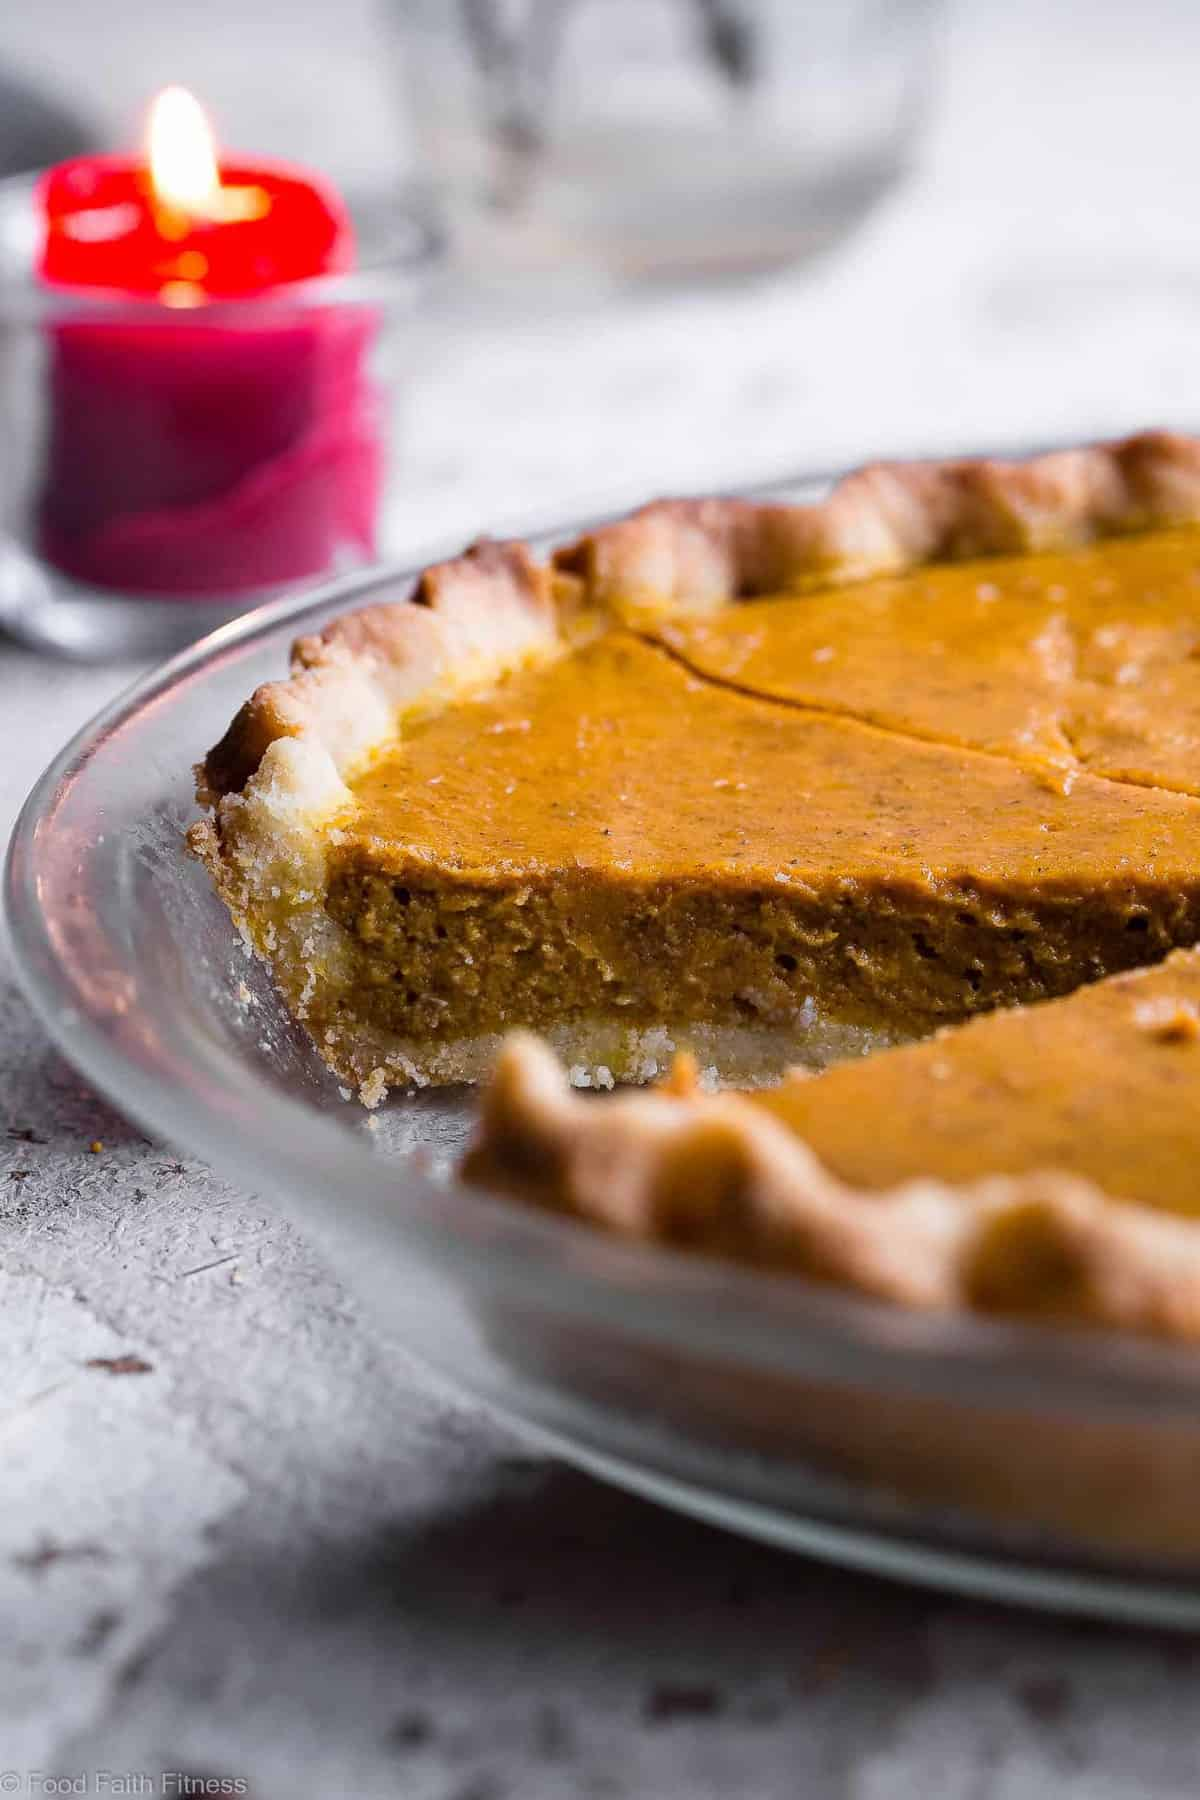 The BEST Paleo Low Carb Sugar Free Pumpkin Pie -Thispaleo friendly, sugar free pumpkin pie is SO delicious, you will never know it's dairy and gluten free and only 200 calories a slice! Everyone will want this recipe! | #Foodfaithfitness